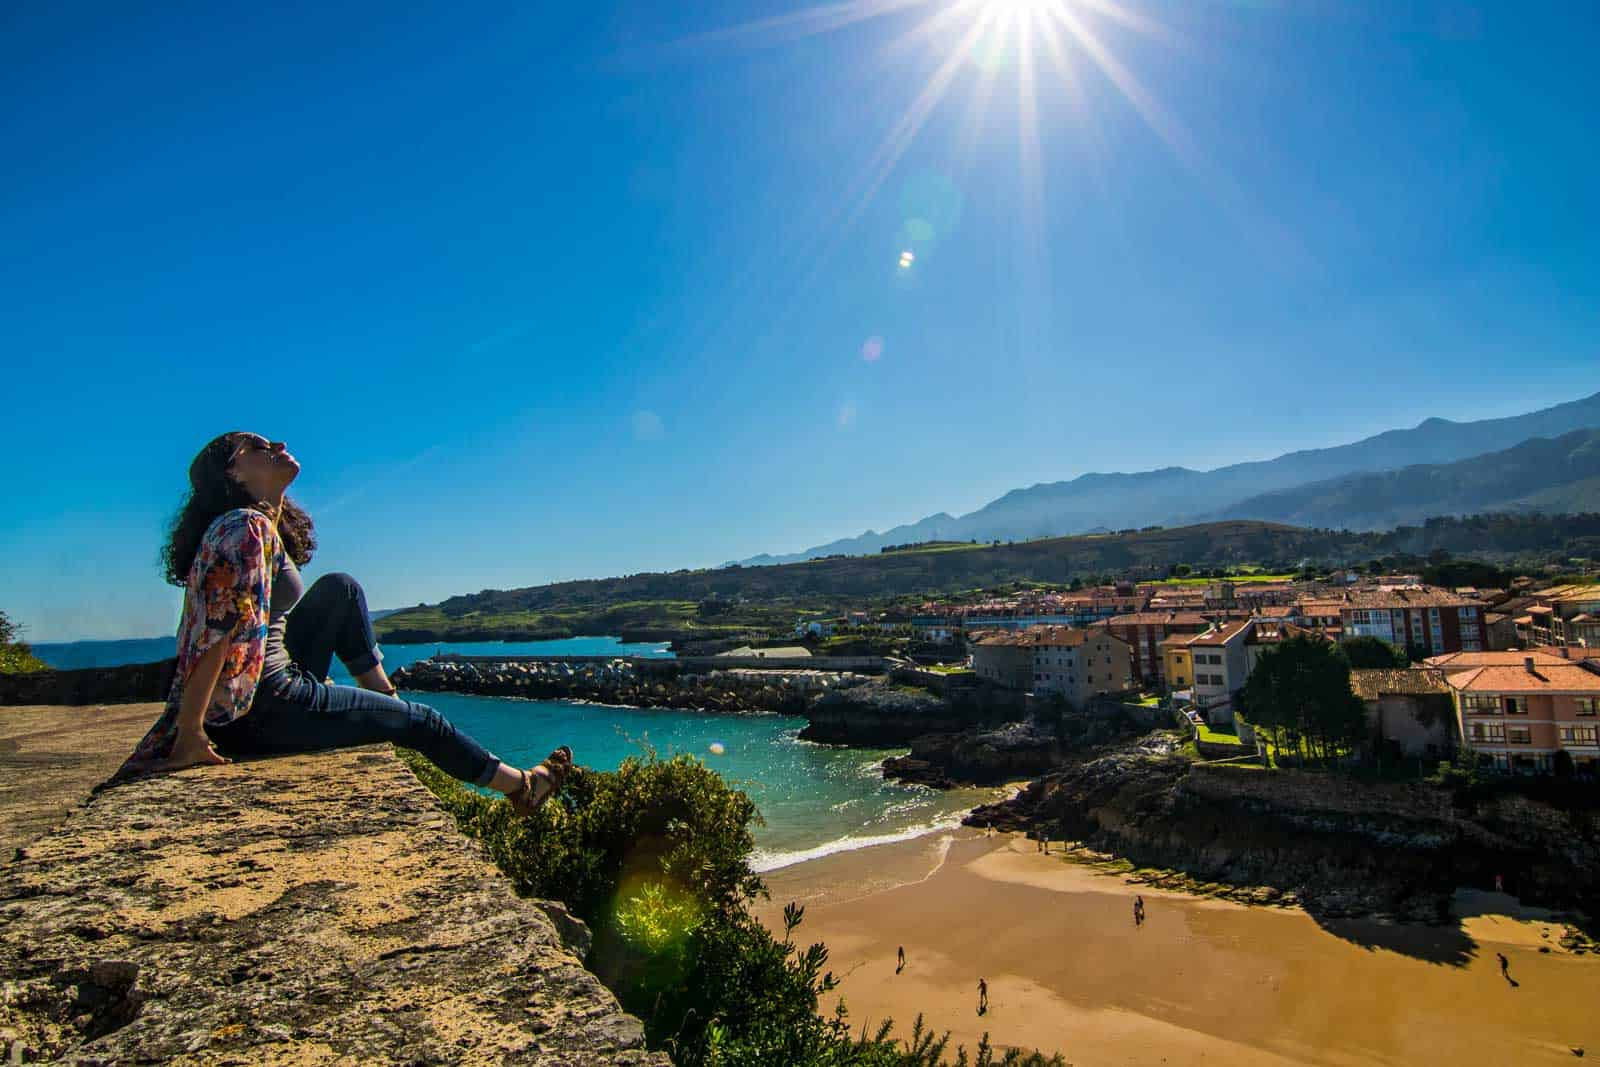 llanes asturias is a nice spot to visit in northern spain